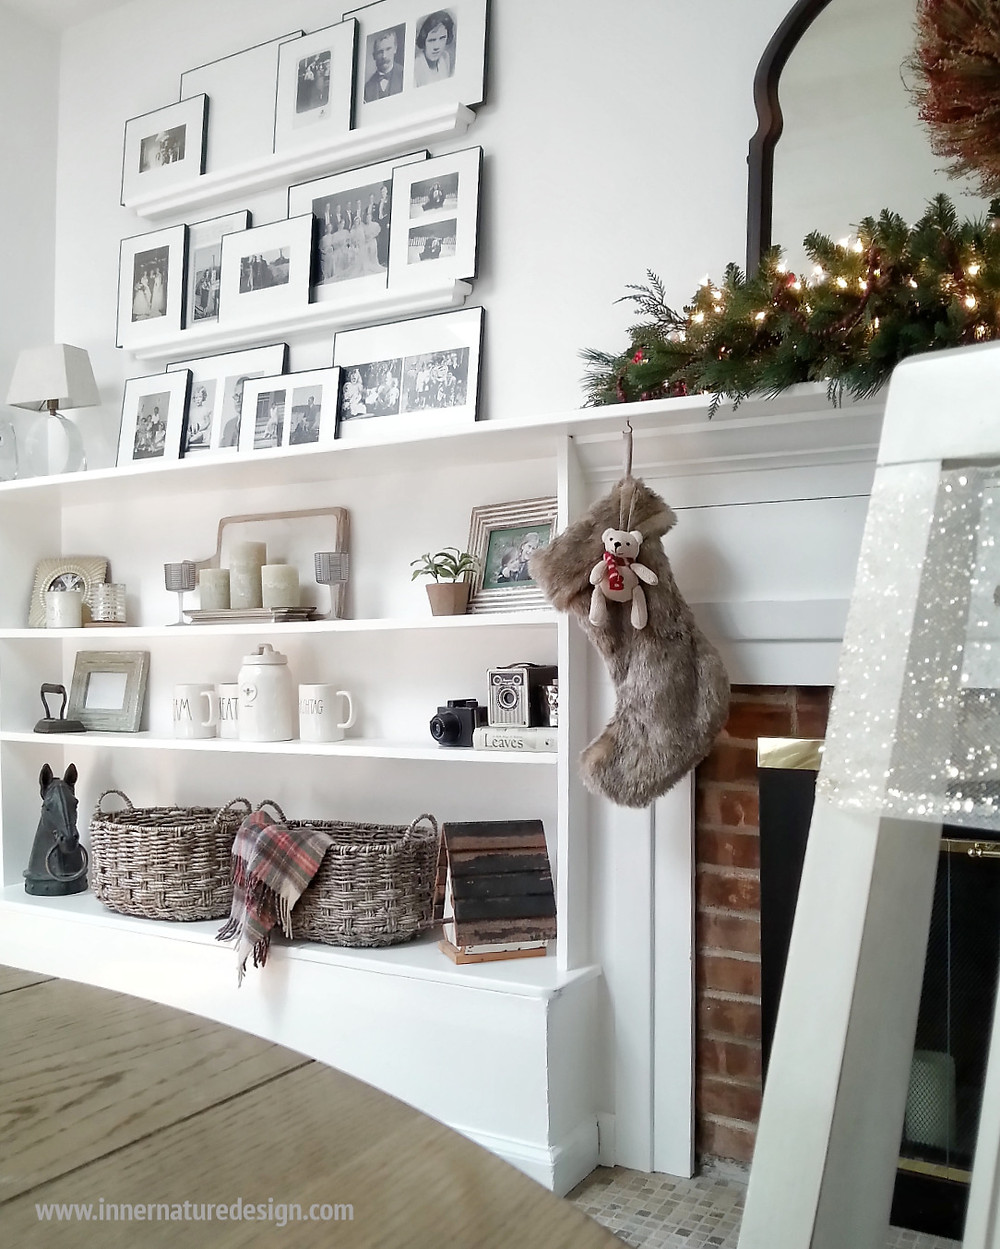 Decorating Built-Ins for Christmas